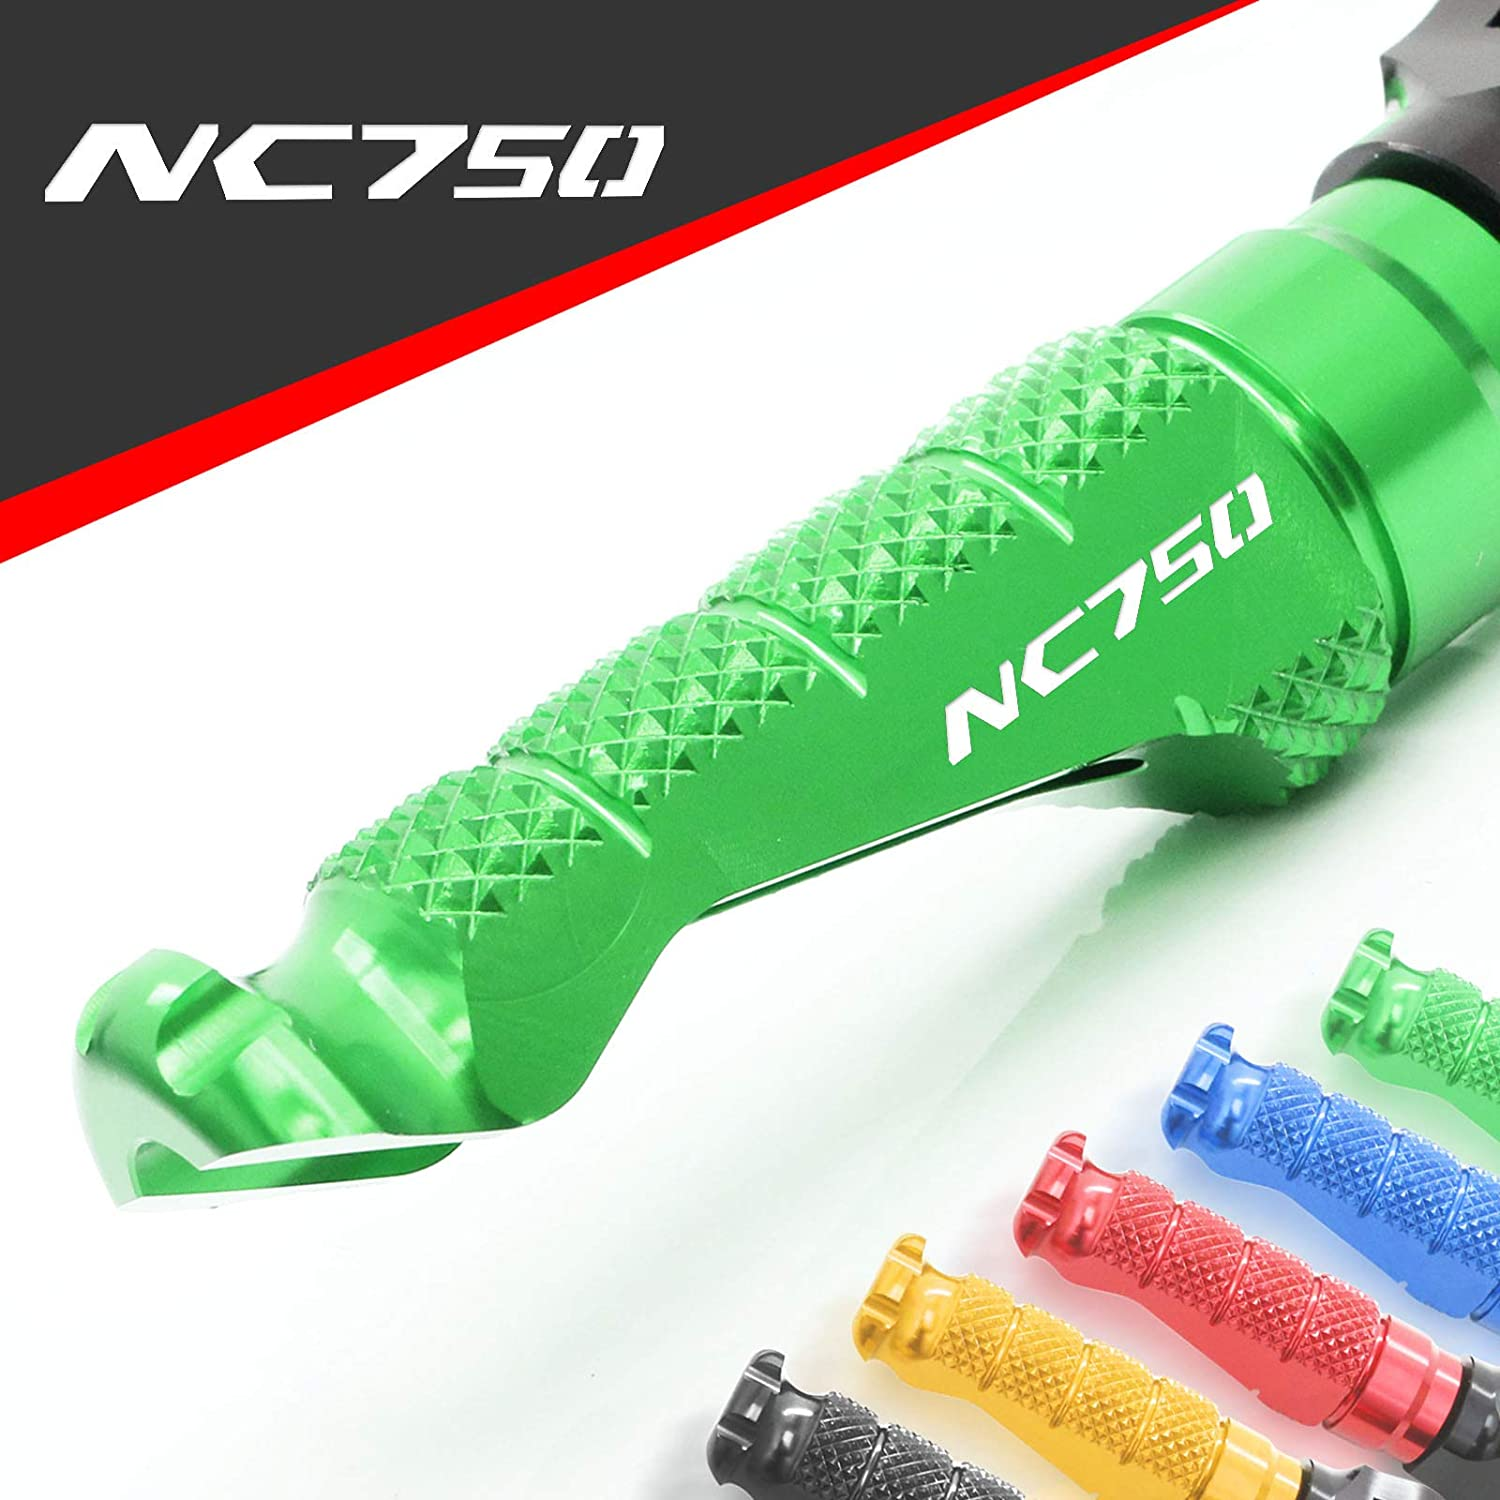 MC MOTOPARTS CNC R-FIGHT Front Rider Foot Pegs Footrests For Z125M MONKEY 125 2018-2019 Green